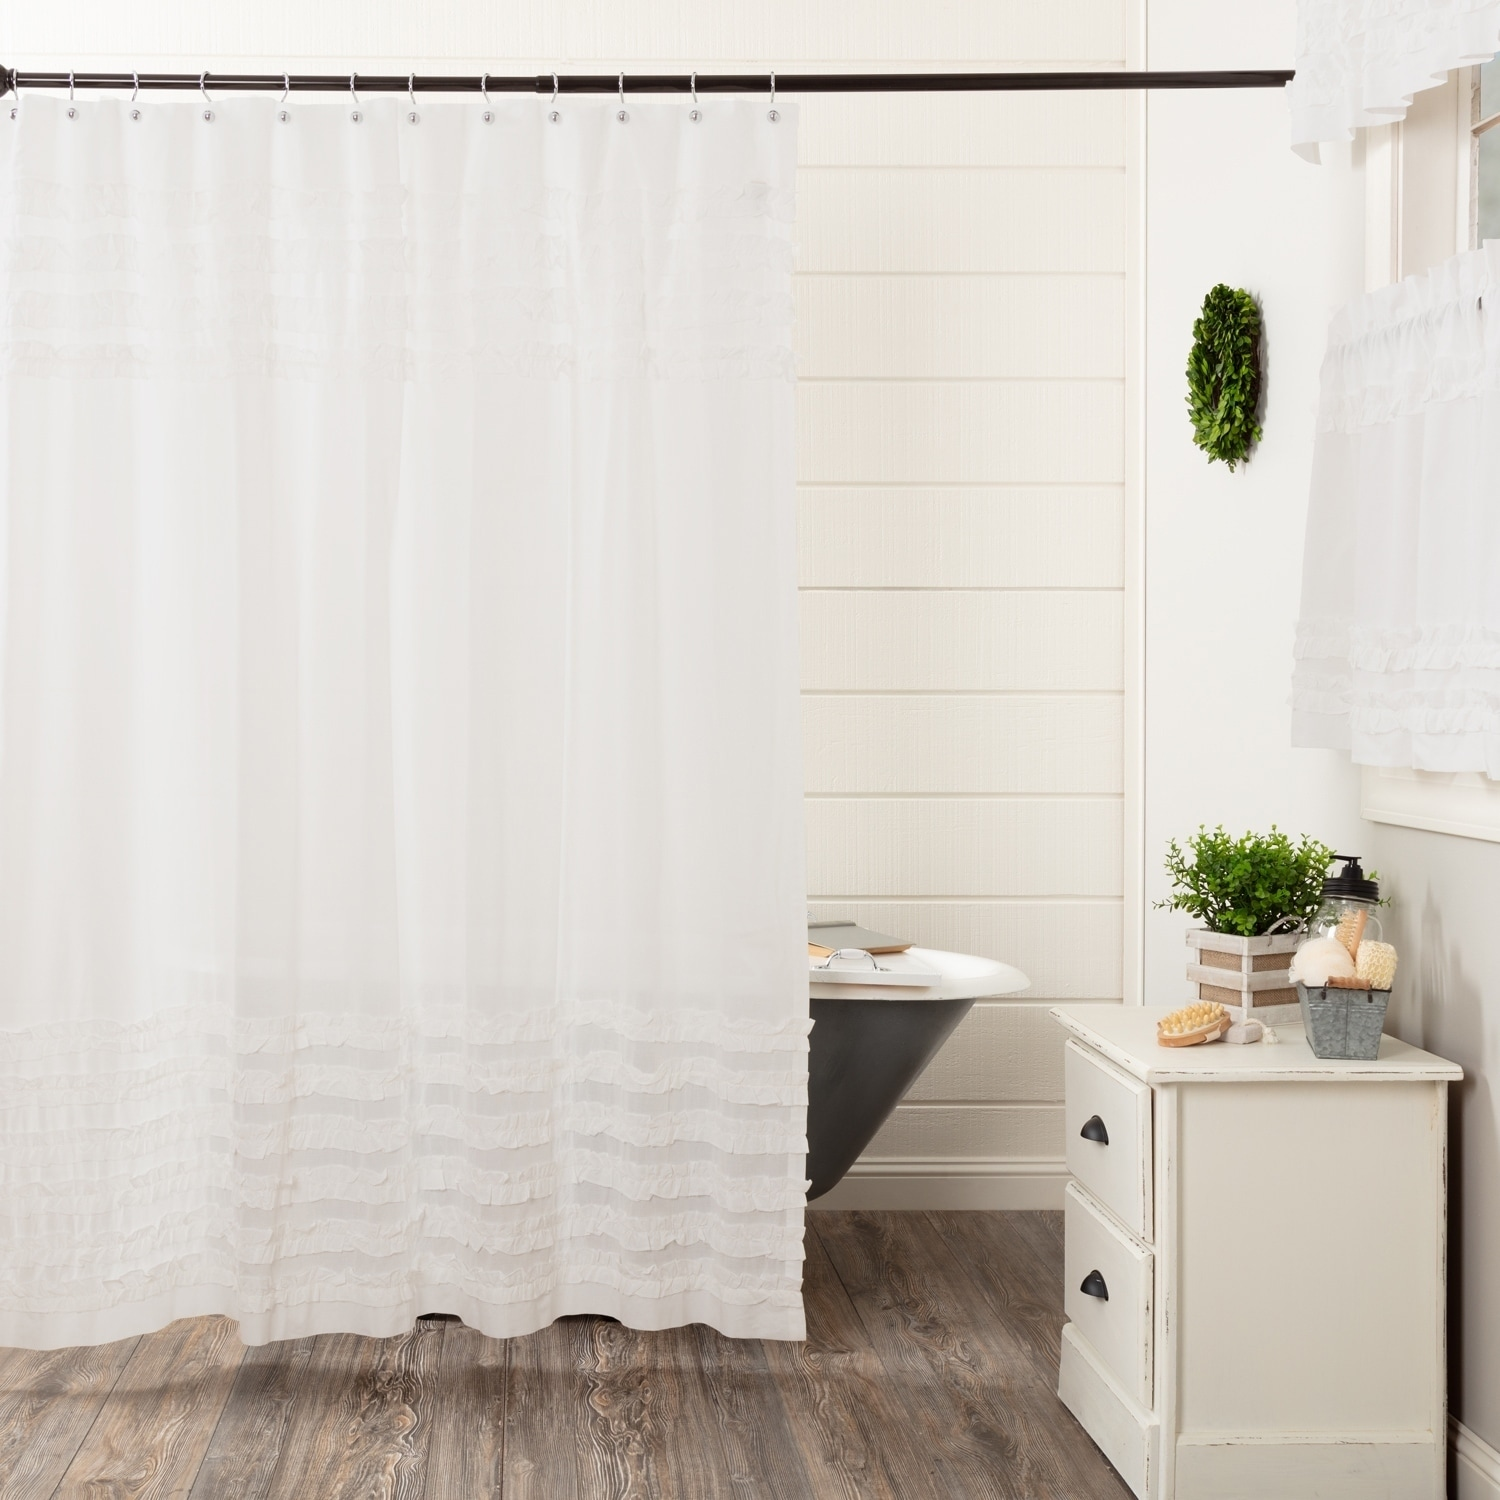 White Farmhouse Bath Vhc White Ruffled Sheer Petticoat Shower Curtain Rod Pocket Cotton Solid Color Ruched Ruffle Sheer